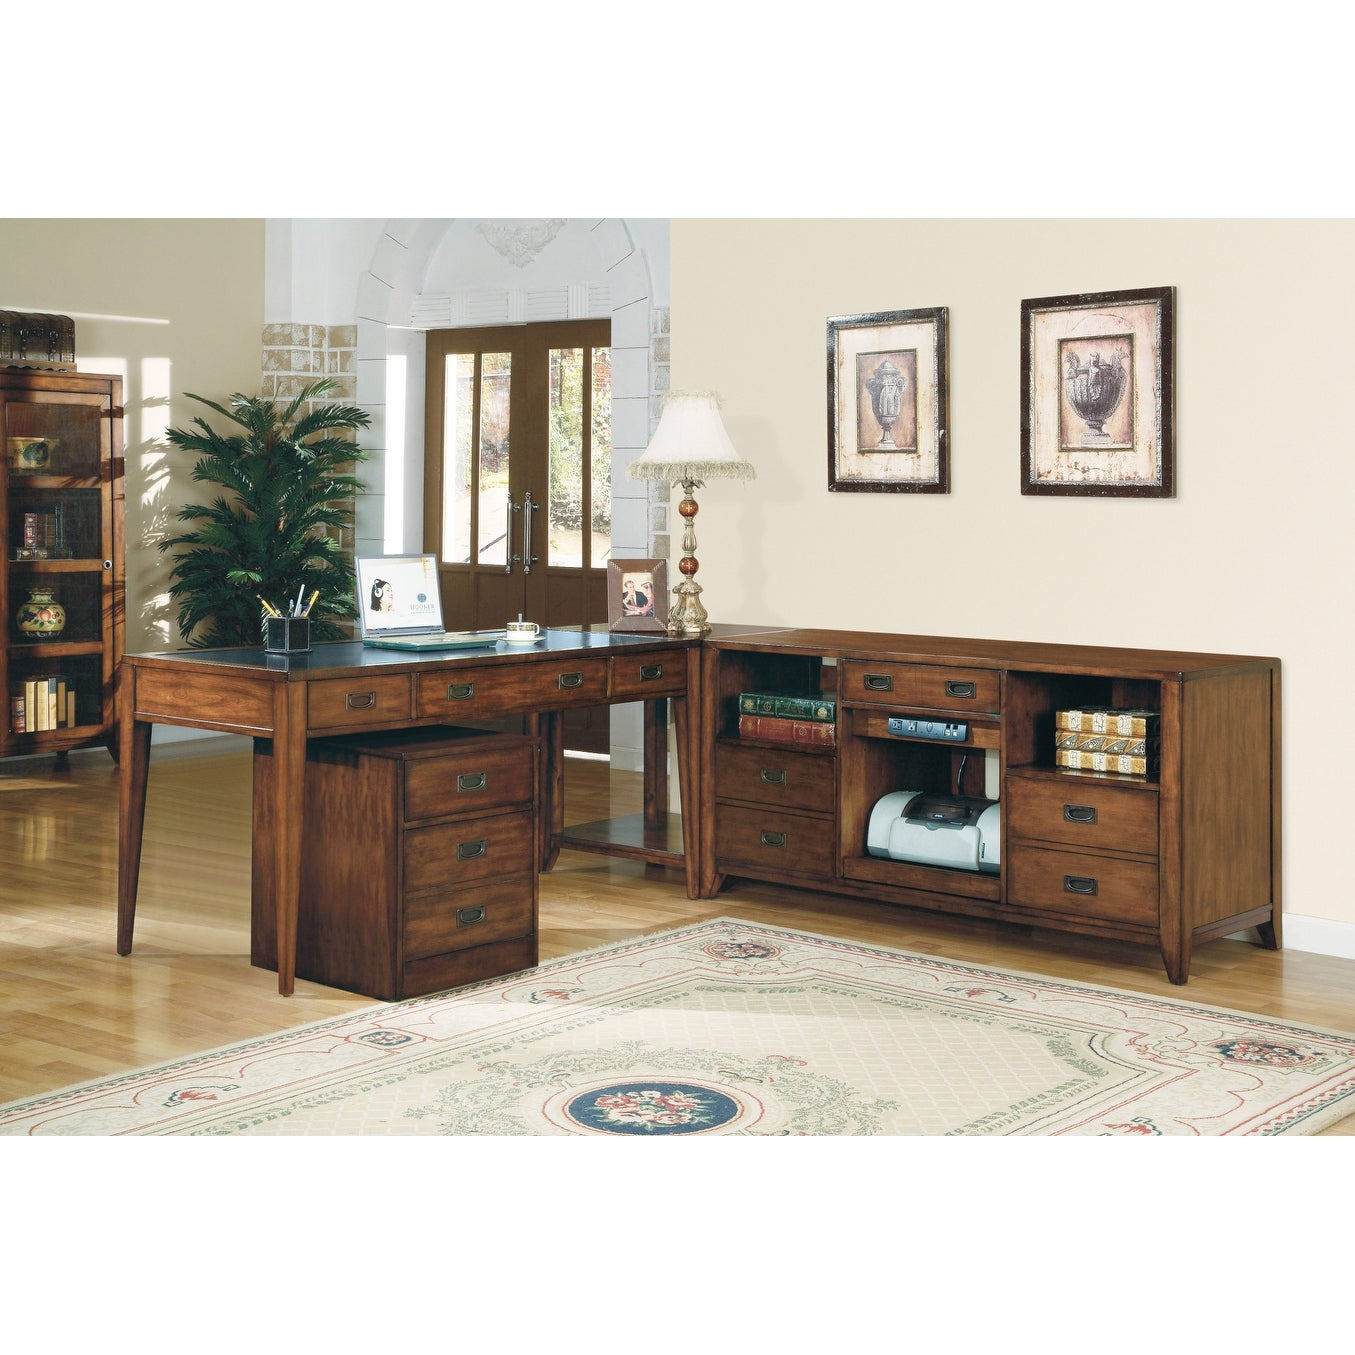 Shop hooker furniture 388 10 412 18 wood 2 drawers birch wood filing cabinet from the danforth collection rich medium brown n a free shipping today